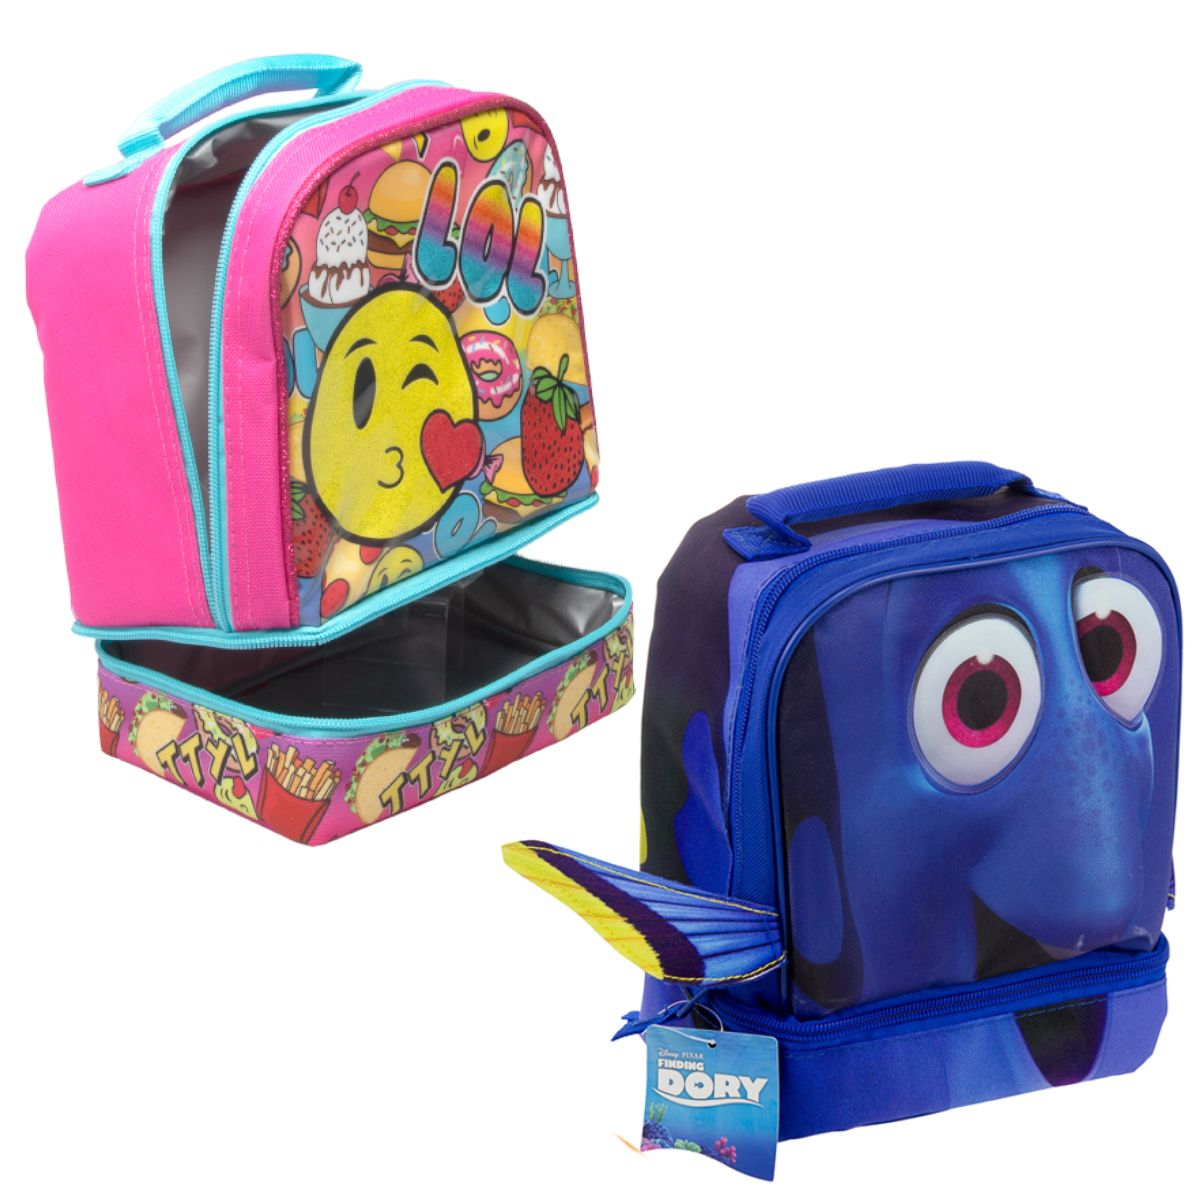 Kids 2-Section Insulated Lunch Bag - All Your Favorite Characters